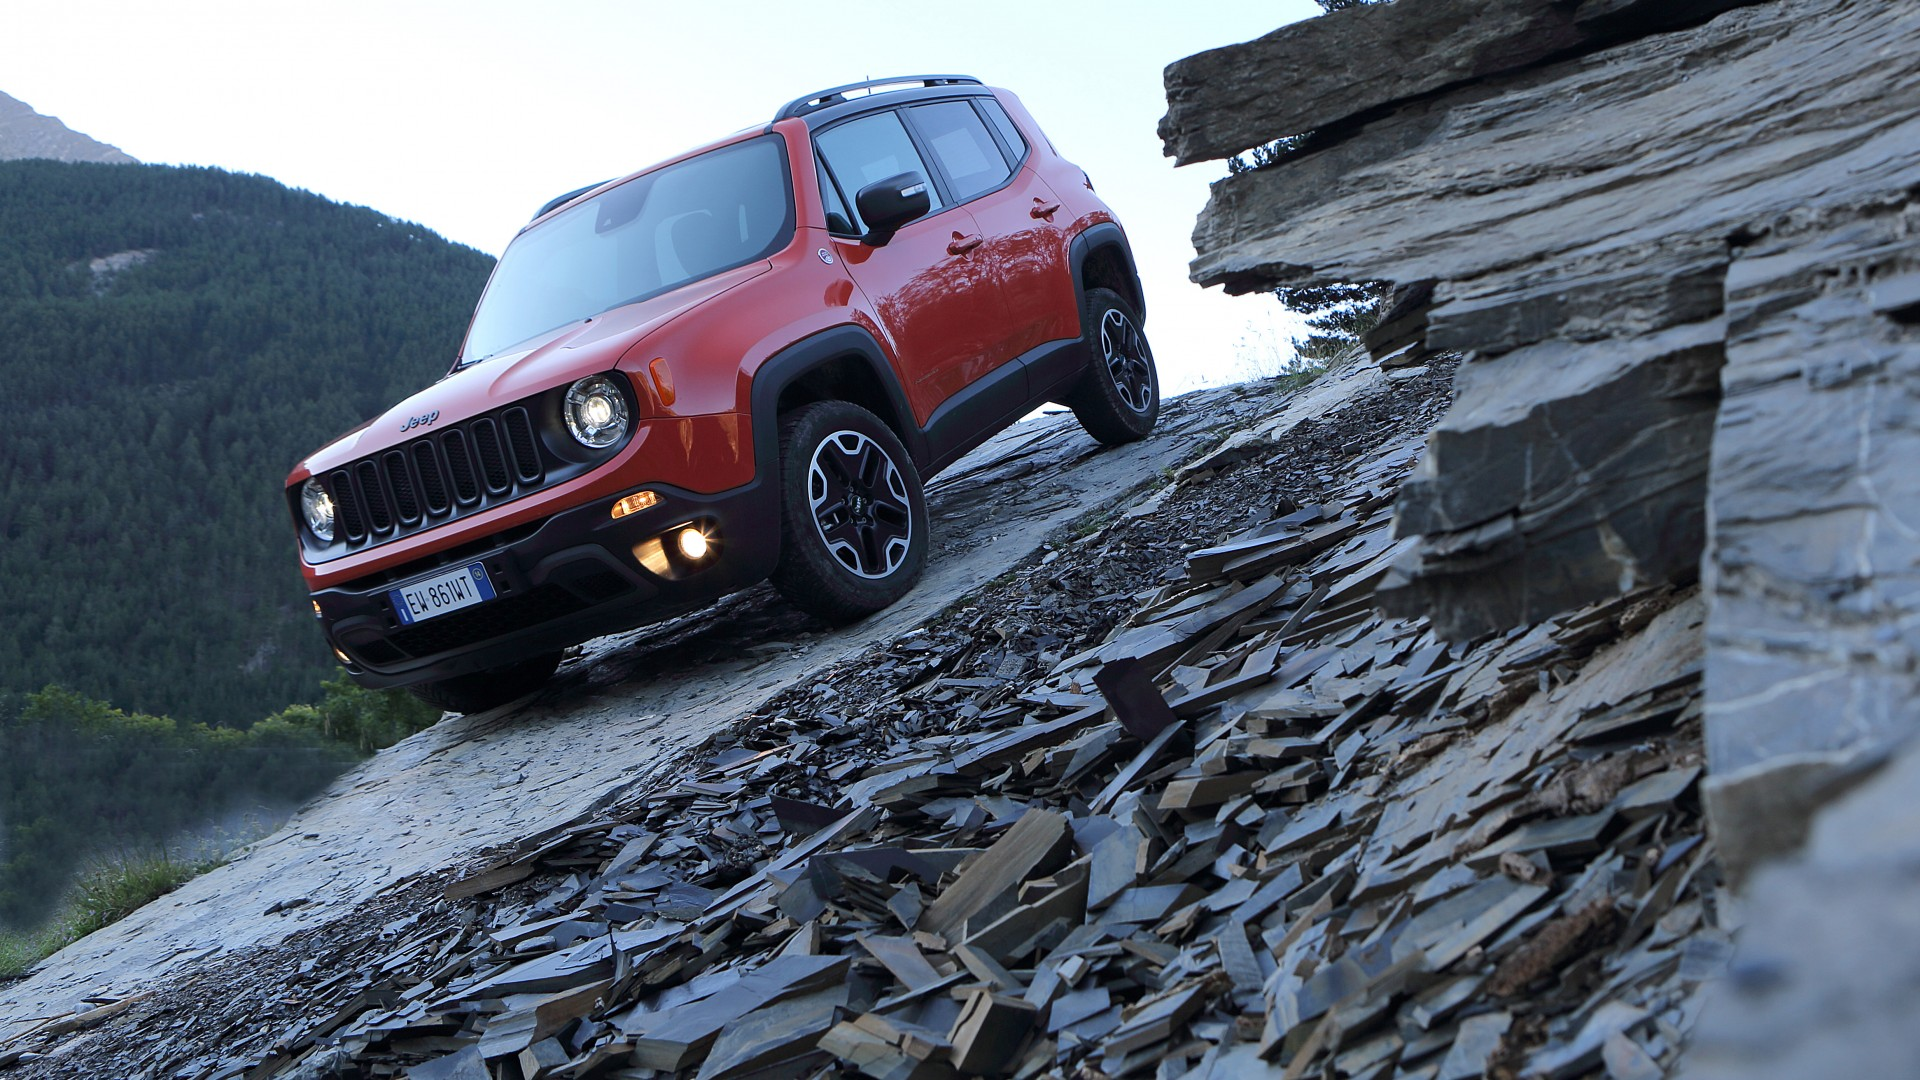 wallpaper jeep renegade crossover suv 2015 cars detroit review test drive front cars. Black Bedroom Furniture Sets. Home Design Ideas